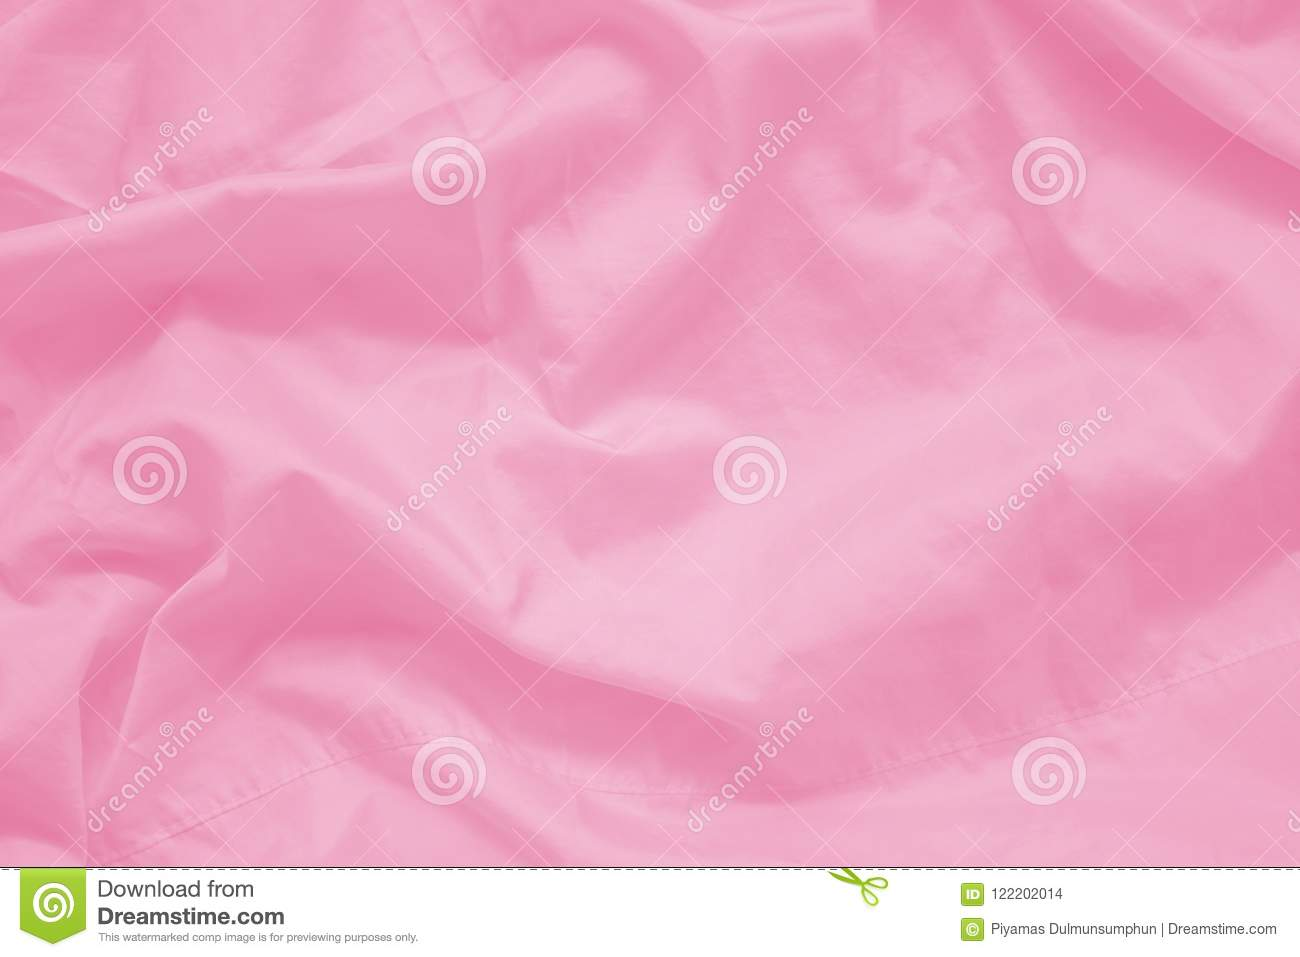 Abstract wrinkled sweet pink color fabric cloth texture with fabric